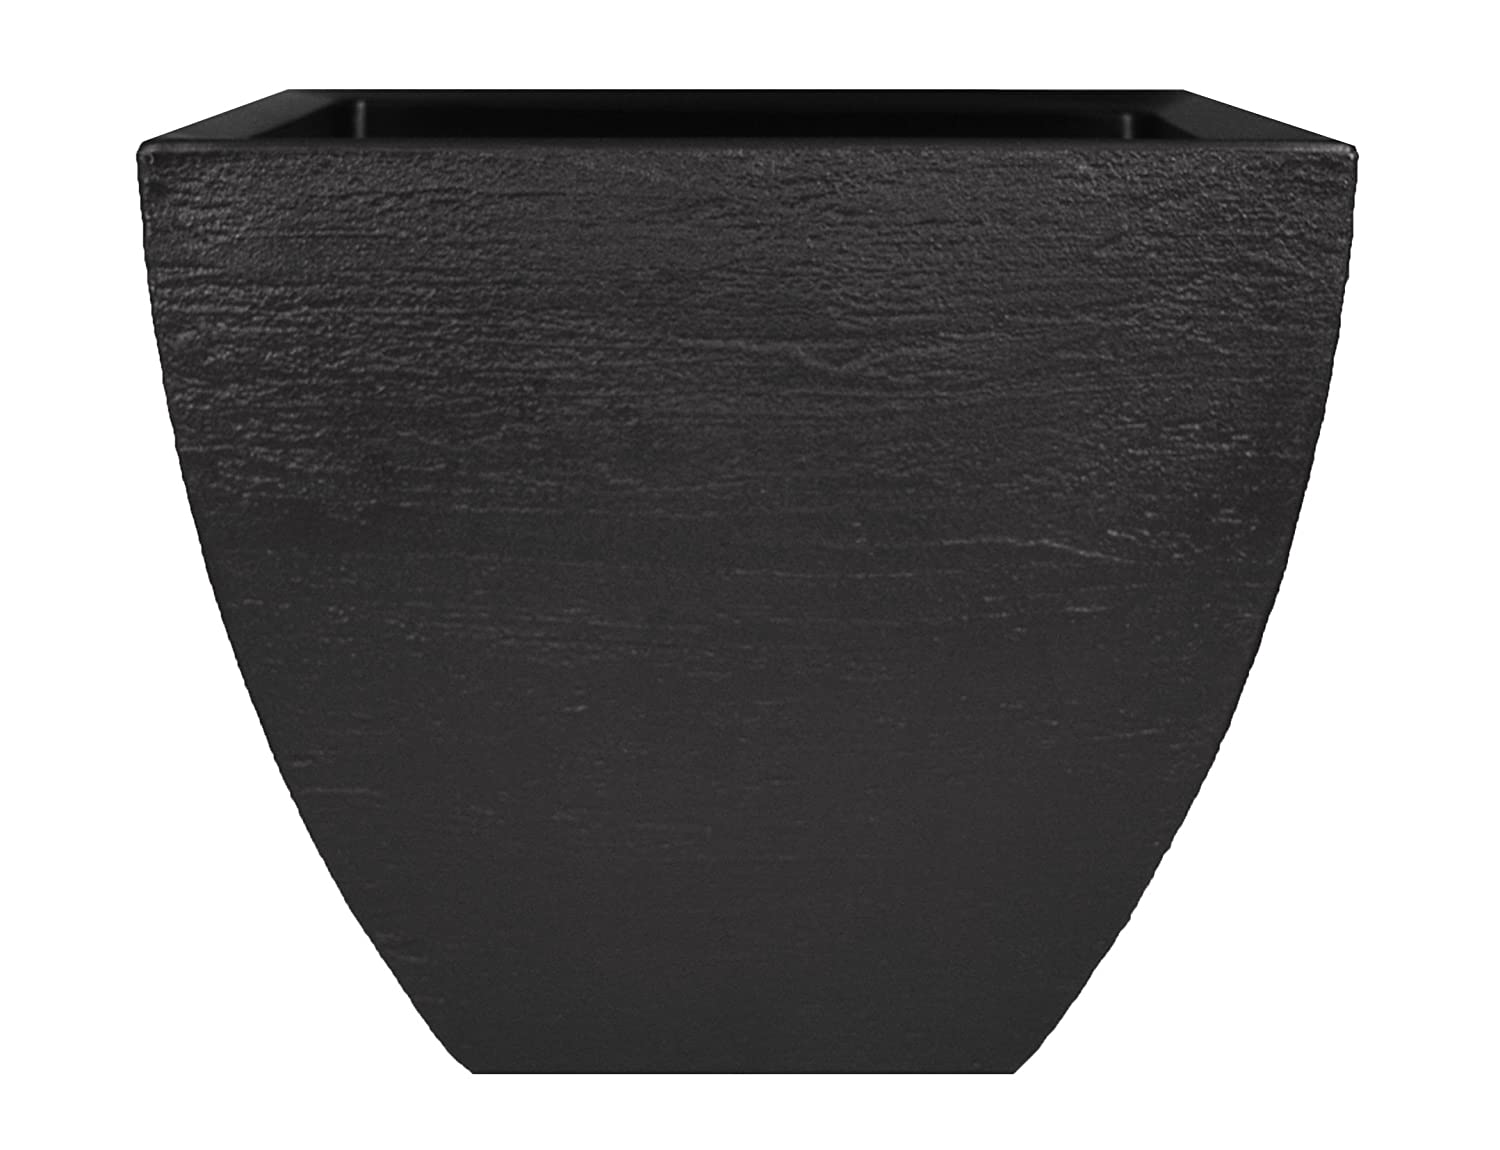 Tusco Products MSQ16BK Modern Square Garden Planter, 16-Inch, Black